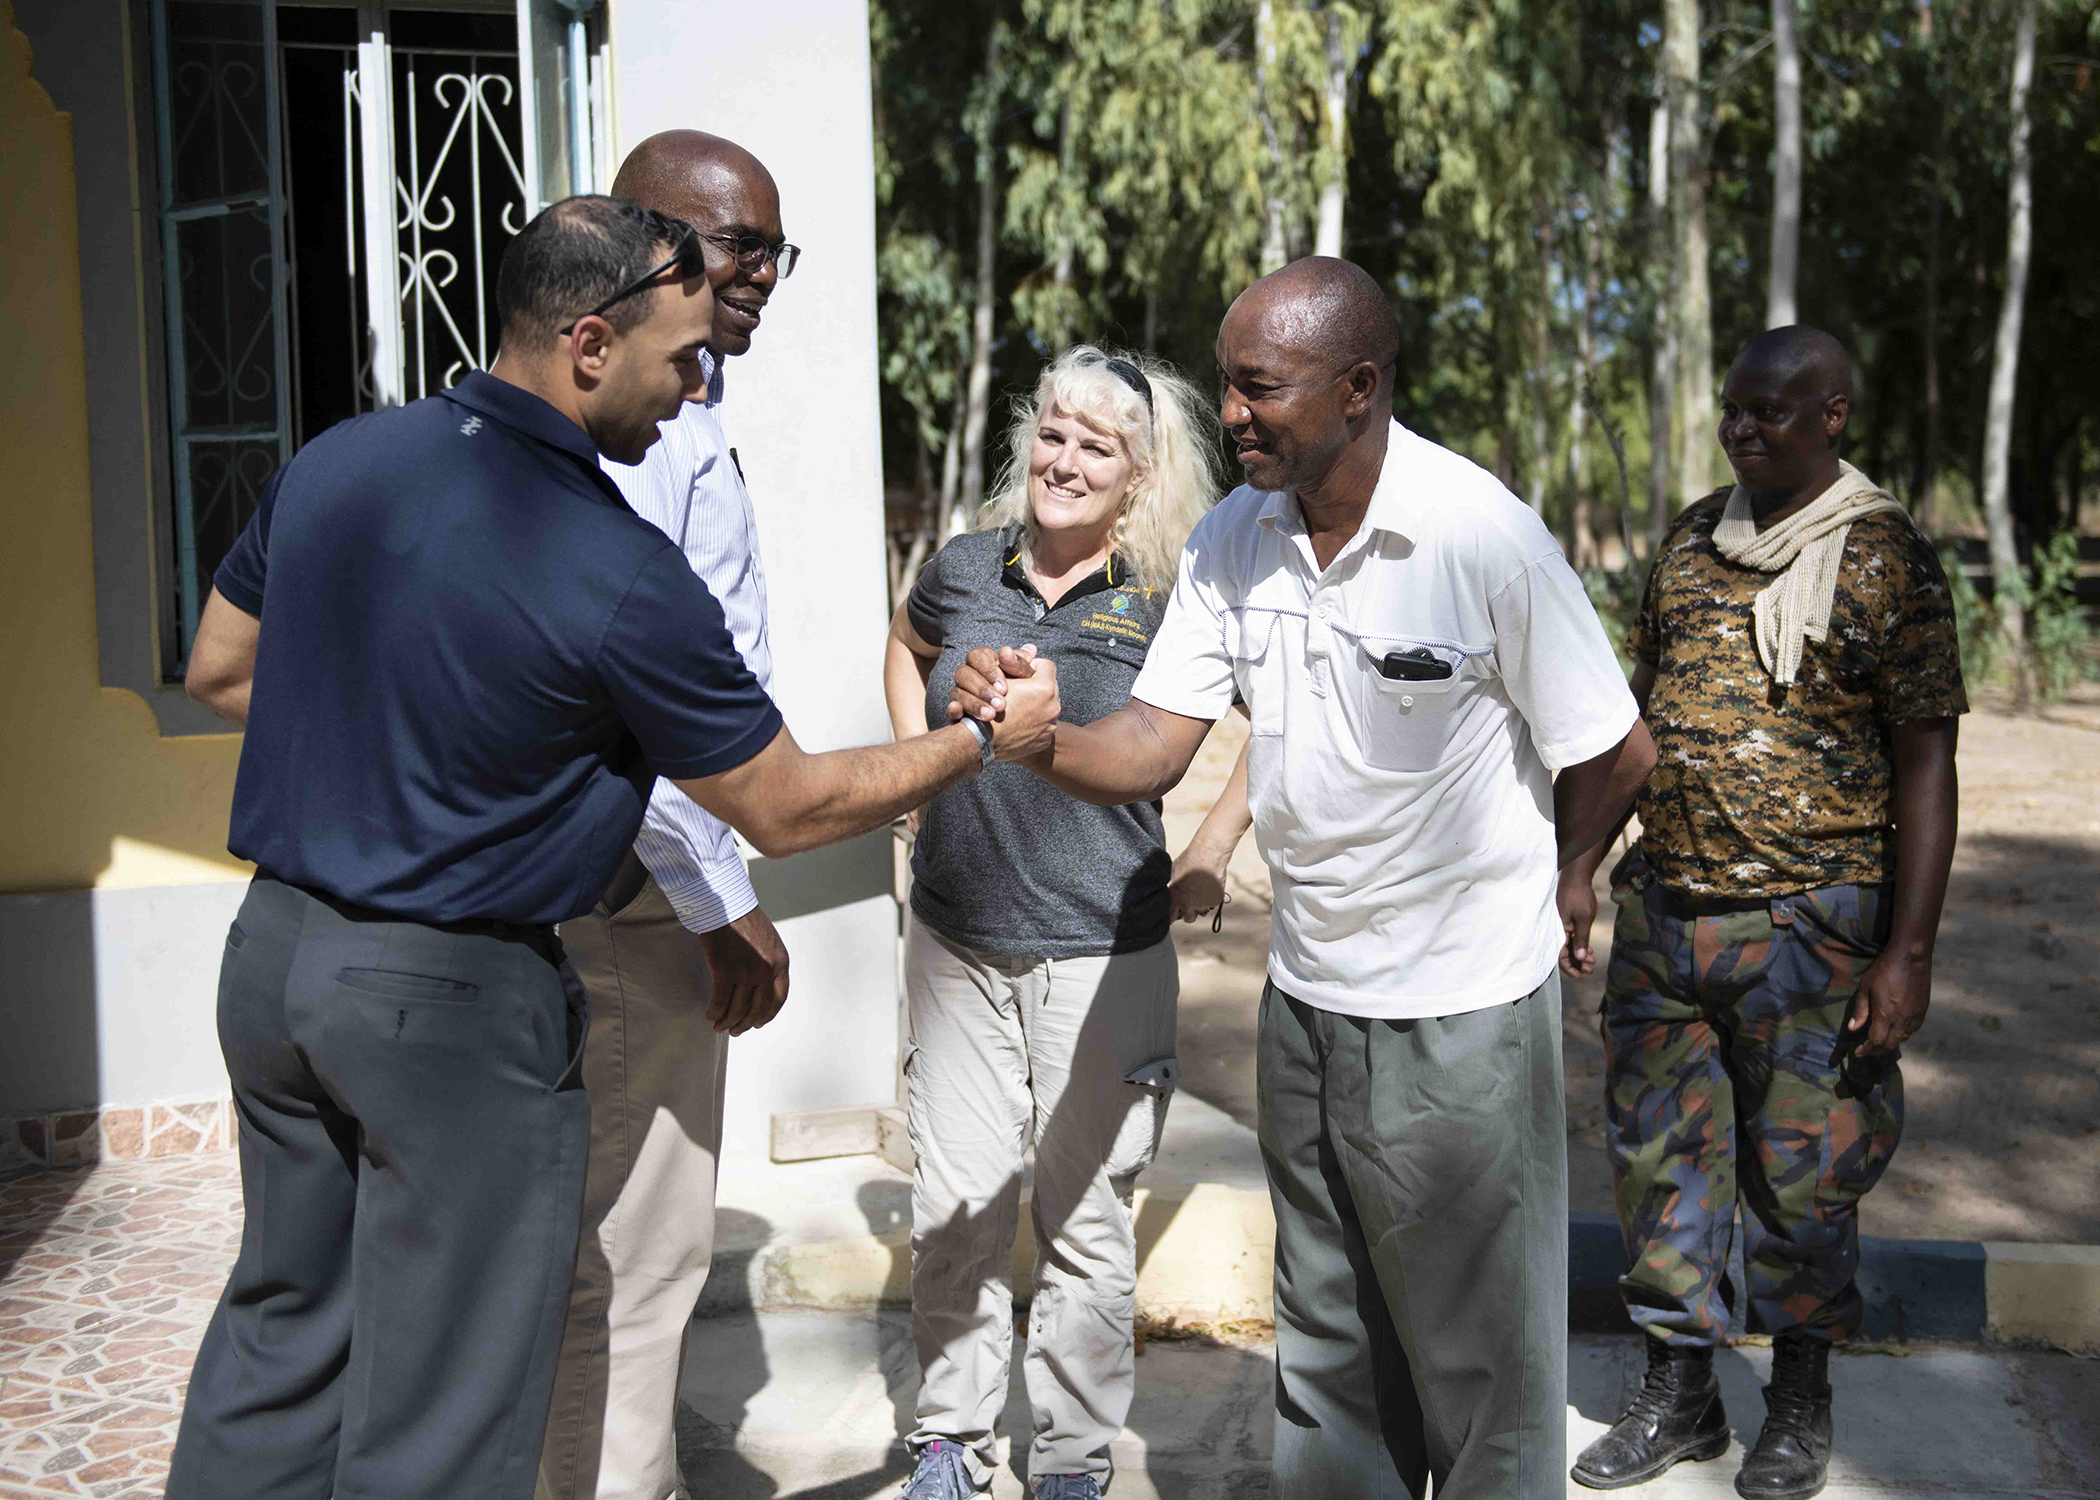 U.S. Army 1st Lt. Luis Alvarez, a Massachusetts National Guard chaplain candidate, shakes hands with Kenya Navy Service Warrant Officer (Rev.) John Mutia Syanda, a senior chaplain at Kenya Navy Compound Manda Bay, while visiting Kenya April 26, 2019. Alvarez and U.S. Army Col. Paul Minor, the senior chaplain assigned to the Massachusetts National Guard, visited Soldiers deployed to Combined Joint Task Force-Horn of Africa and visited Kenya, which is Massachusetts' assigned country under the State Partnership Program, April 25-28, 2019. (U.S. Air Force photo by Tech. Sgt. Shawn Nickel)